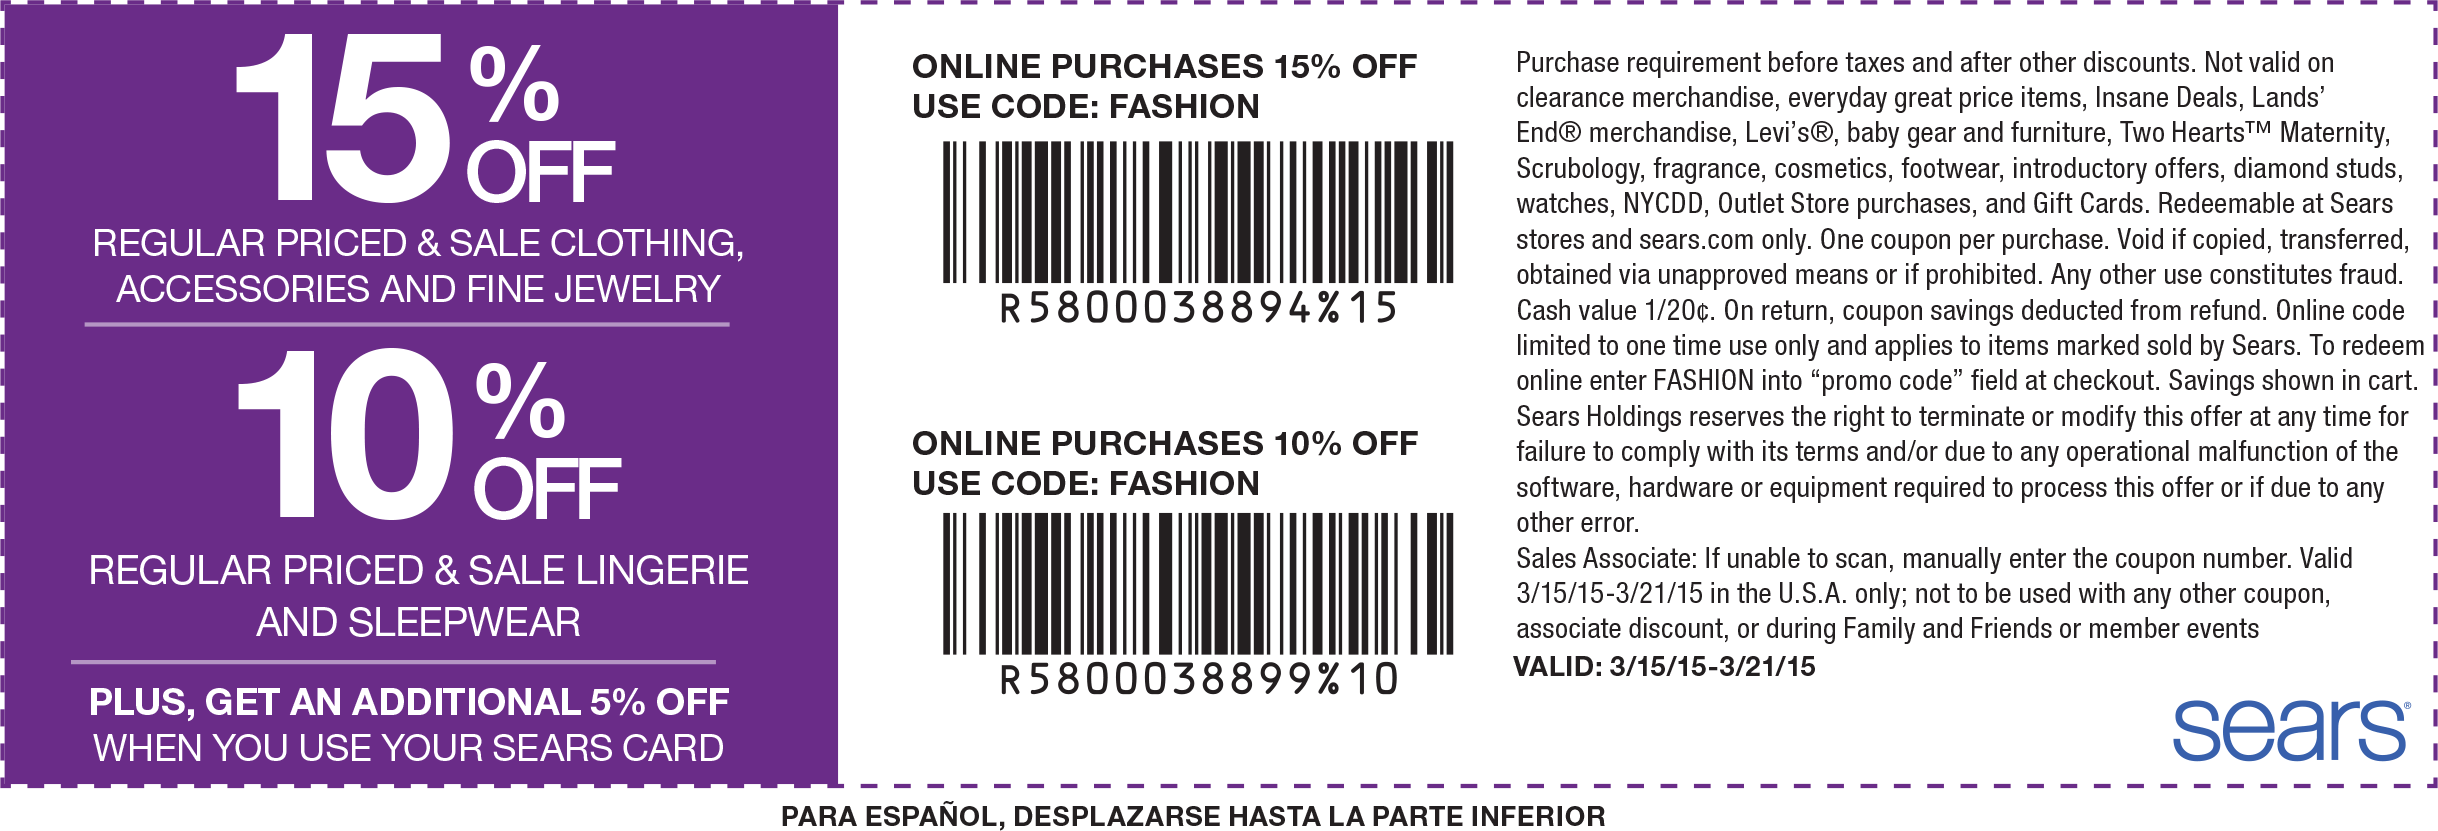 Sears Coupon June 2017 15% off apparel at Sears, or online via promo code FASHION